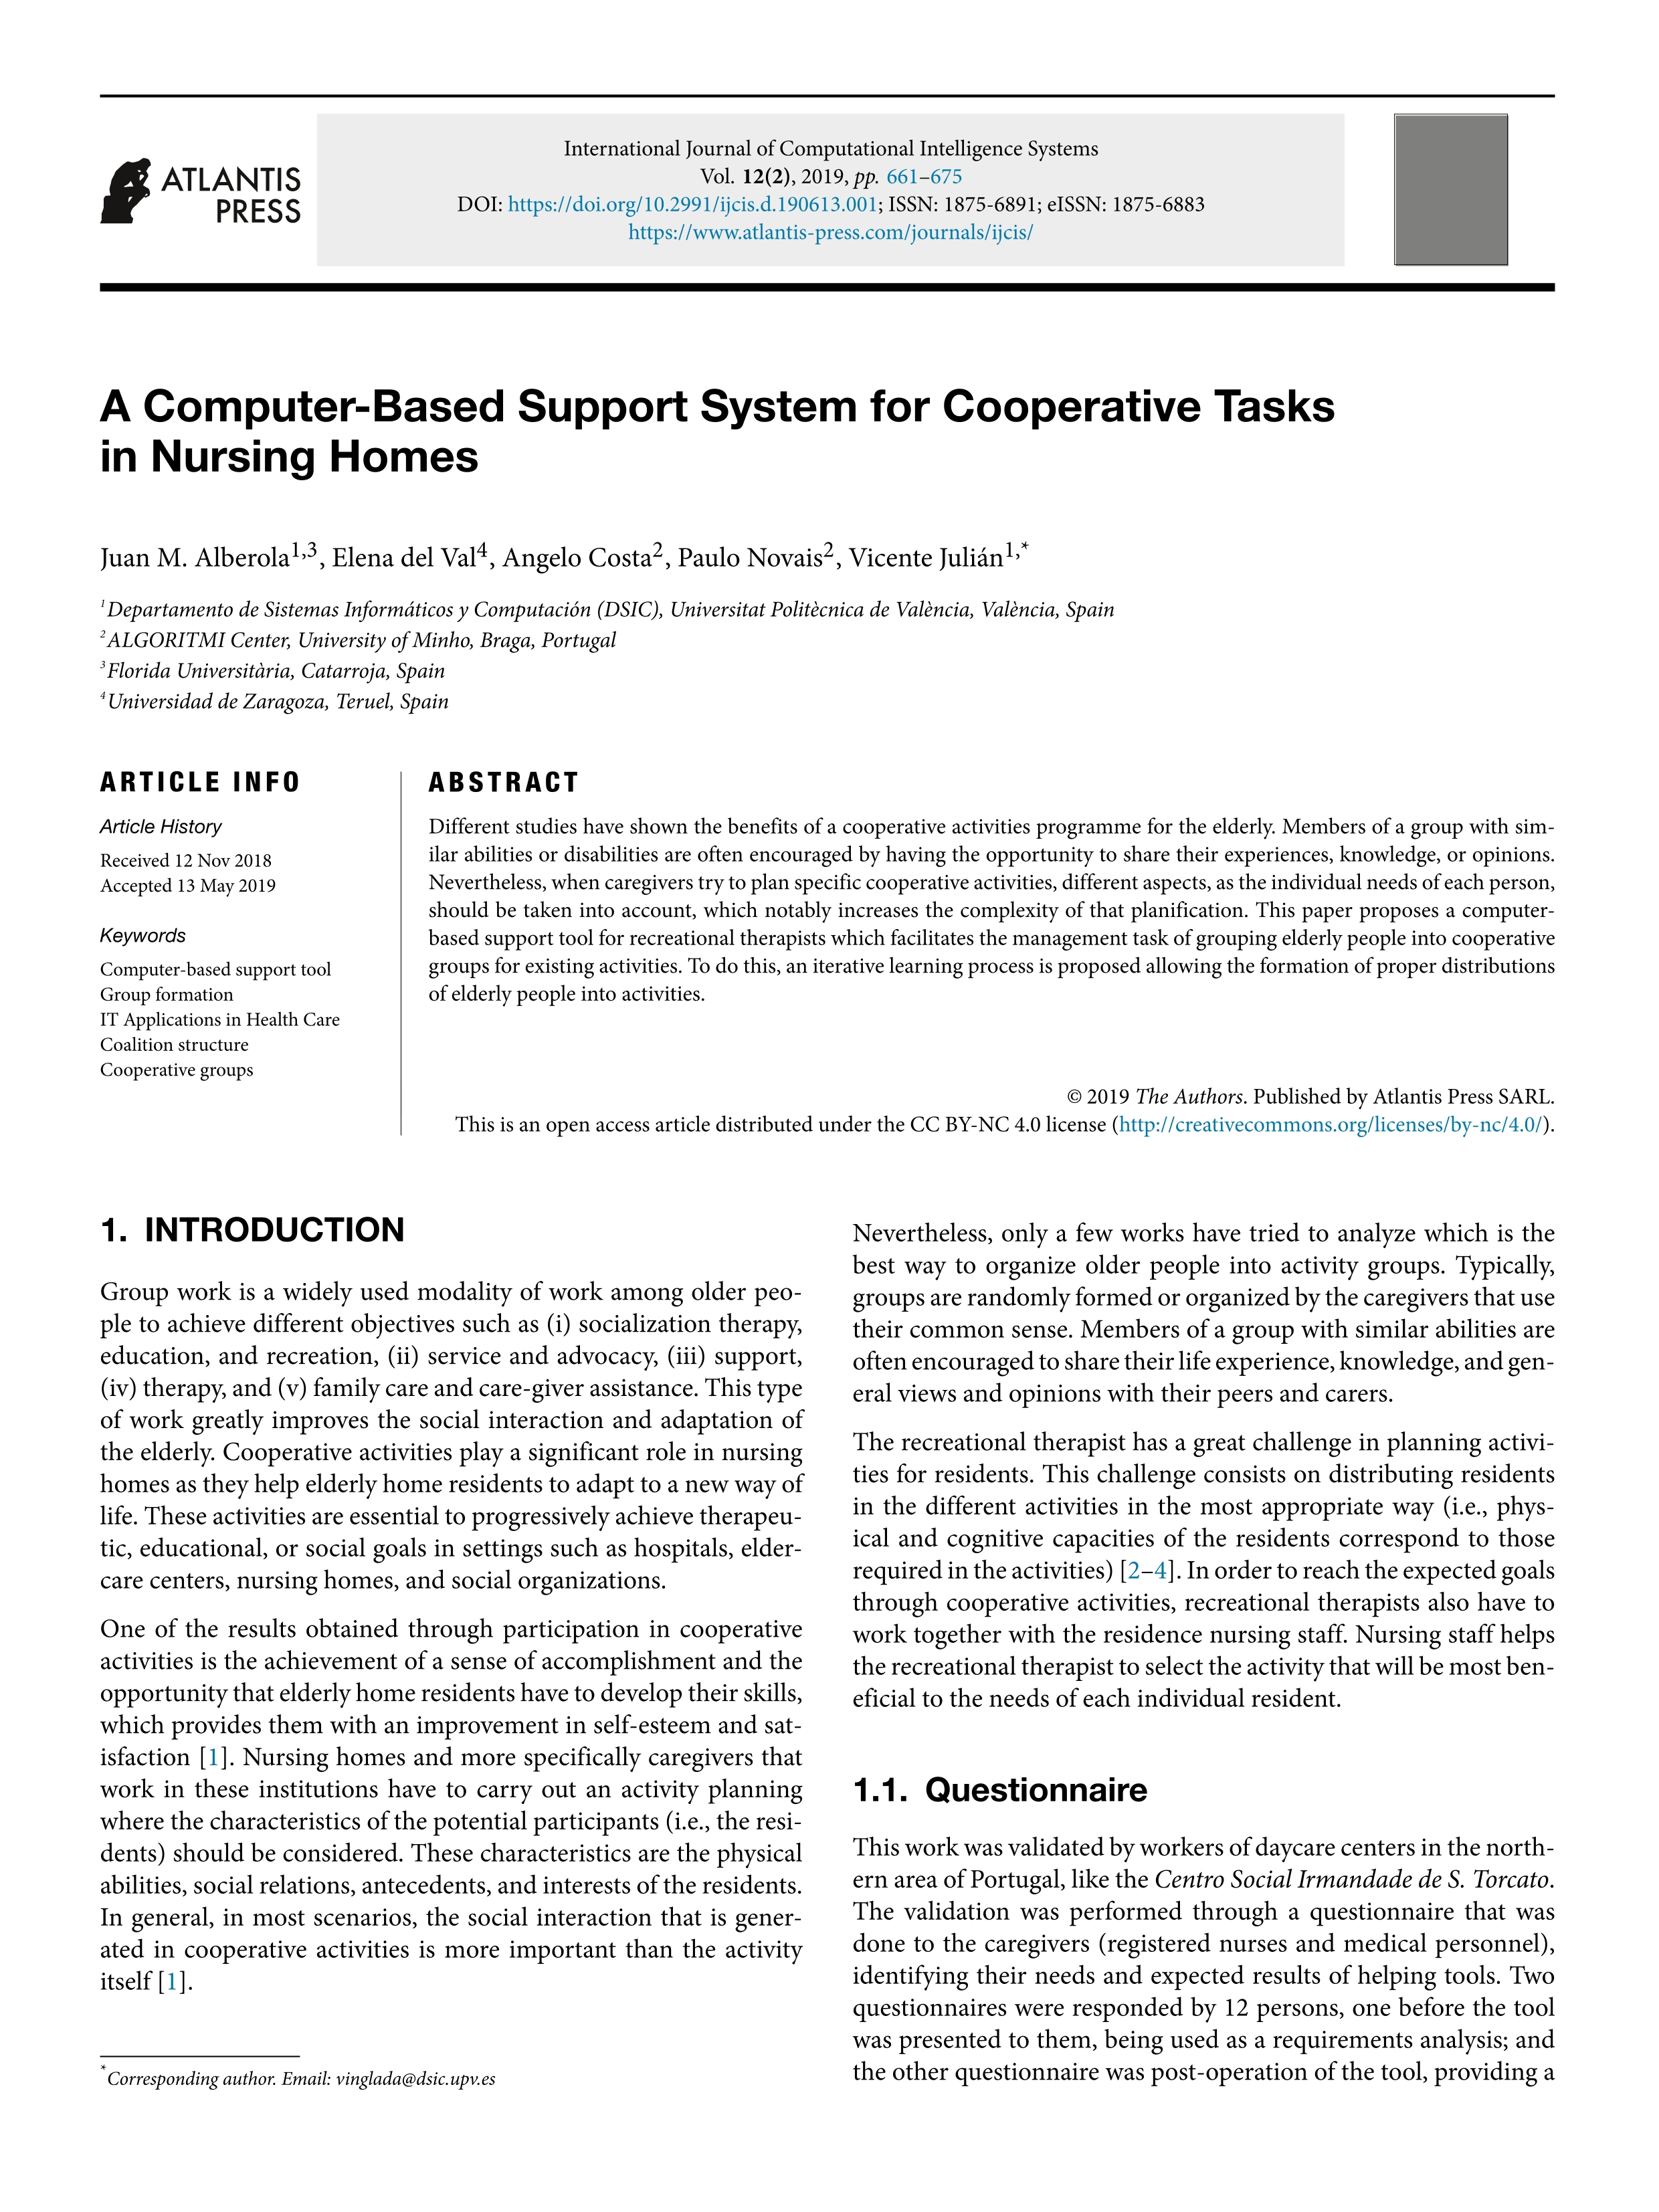 A computer-based support system for cooperative tasks in nursing homes